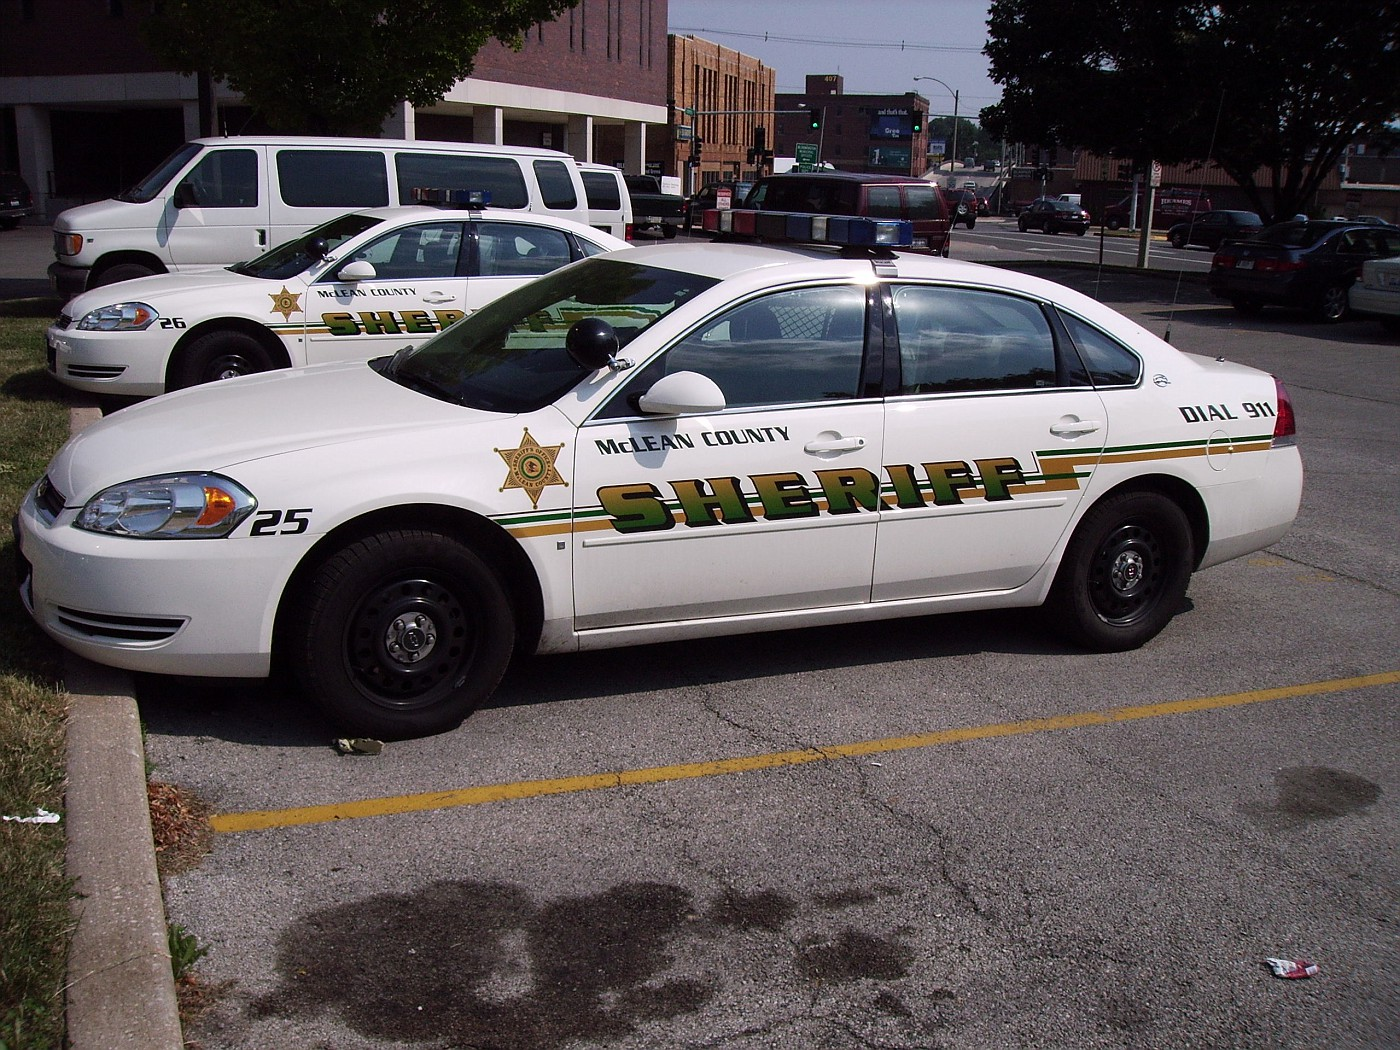 IL - McLean County Sheriff